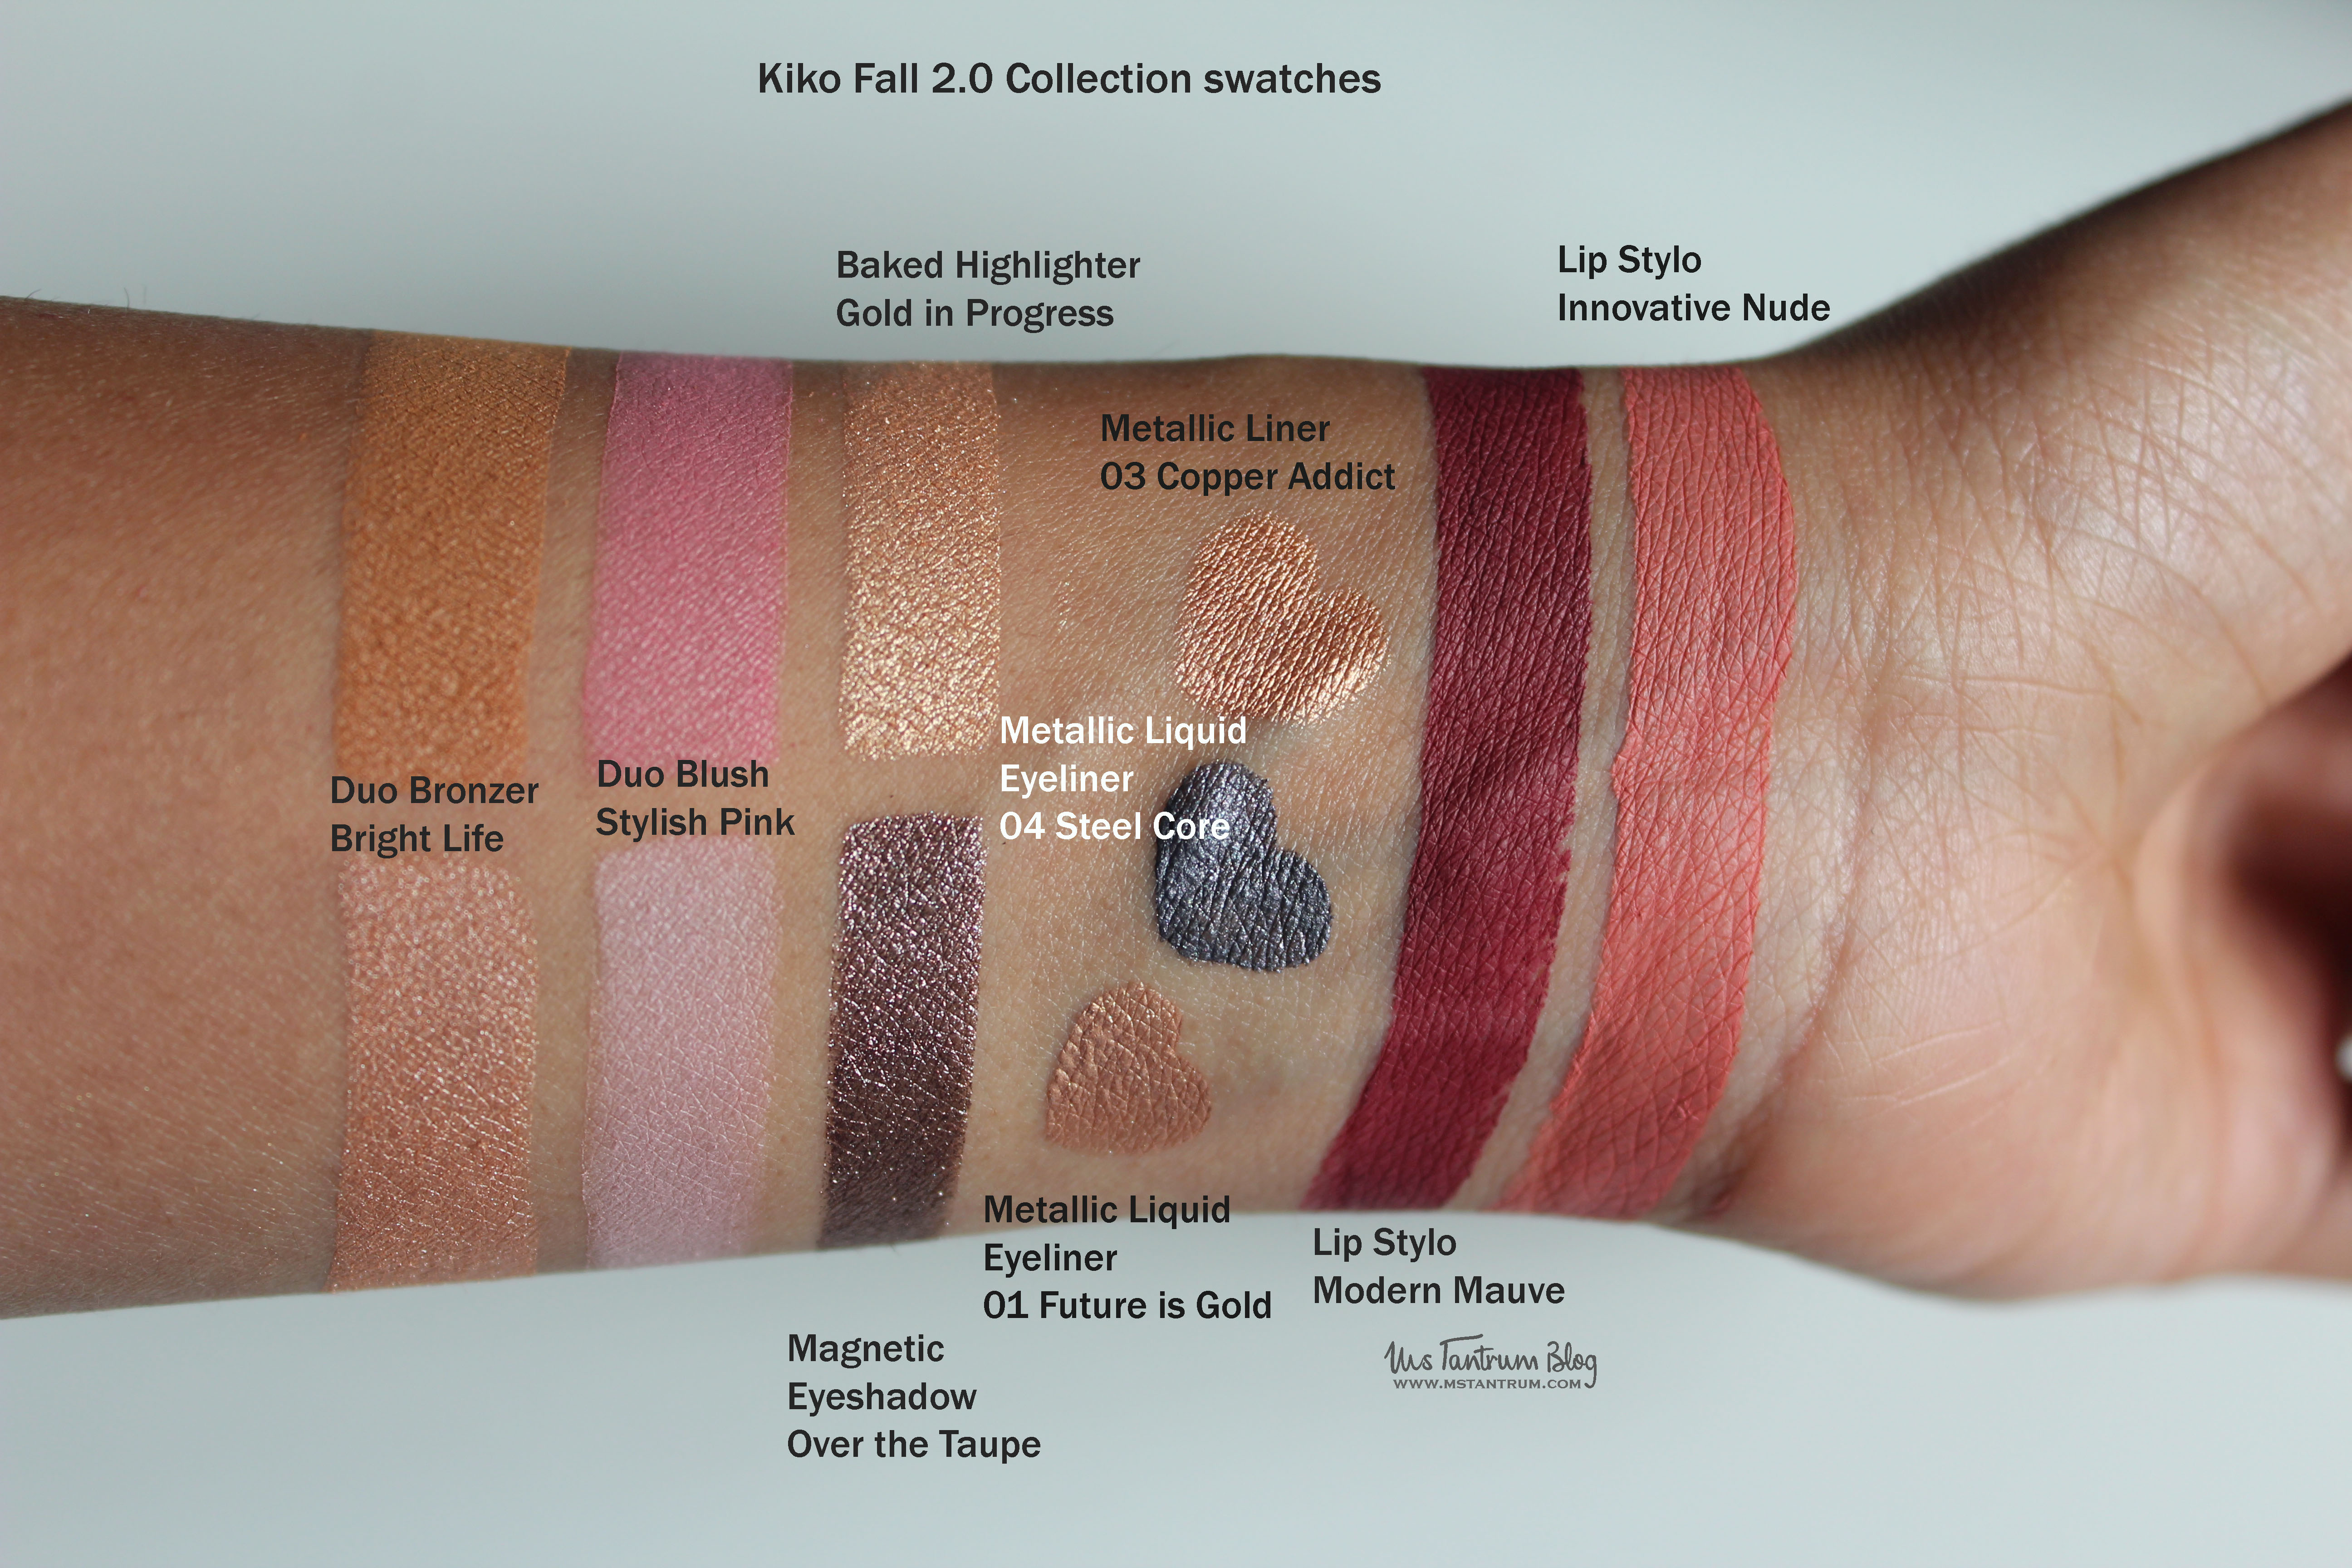 Kiko Fall 2.0 collection swatches